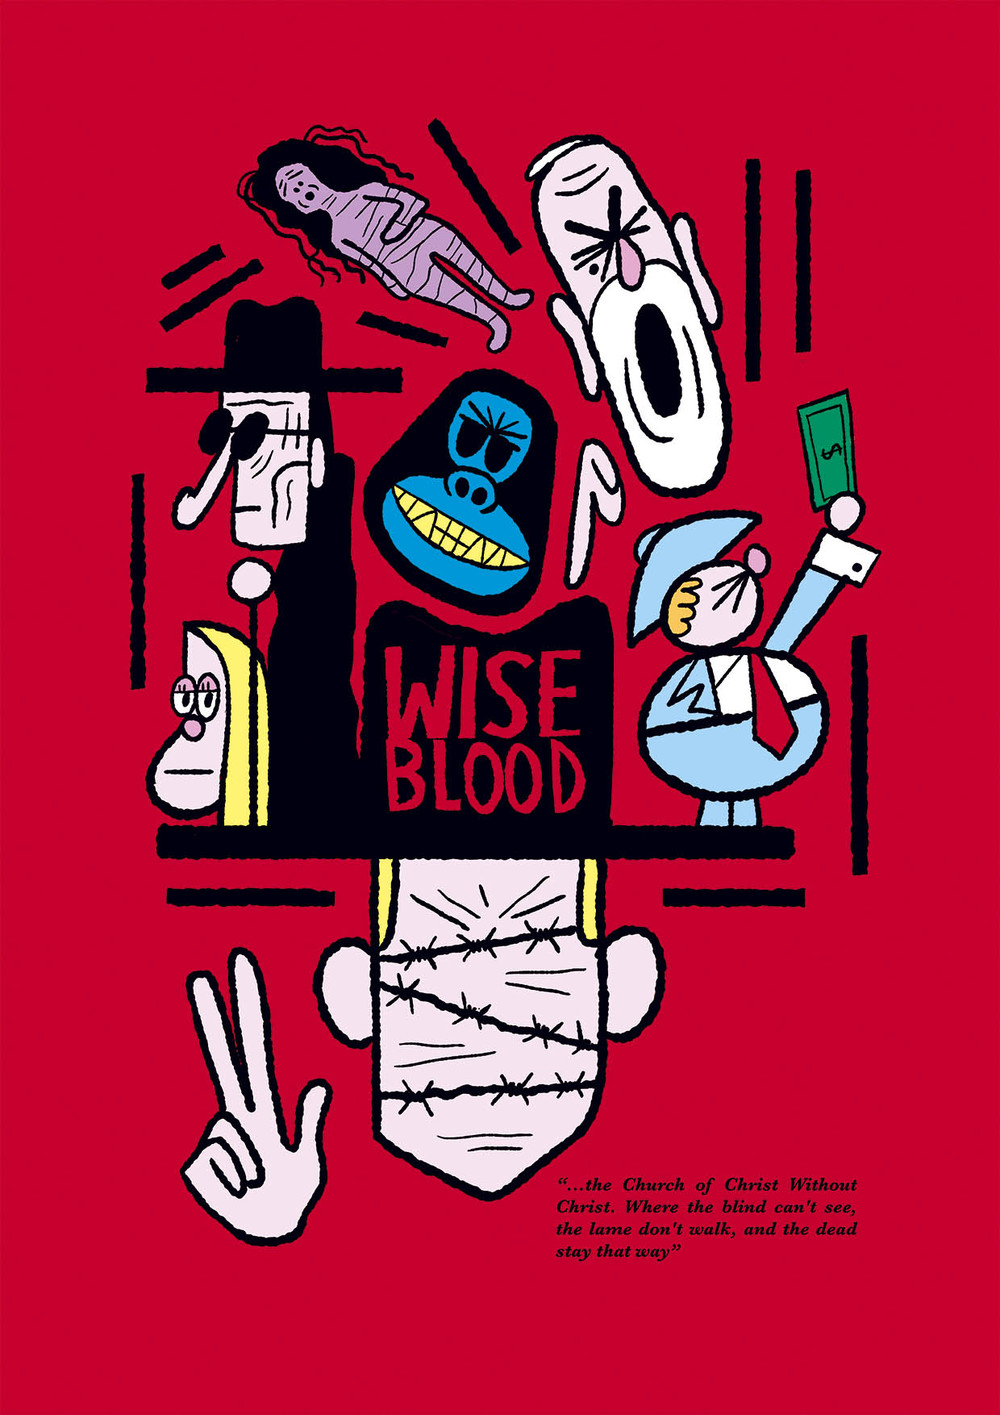 WISE BLOOD - Exposición Artists on Films de Piñata Productions